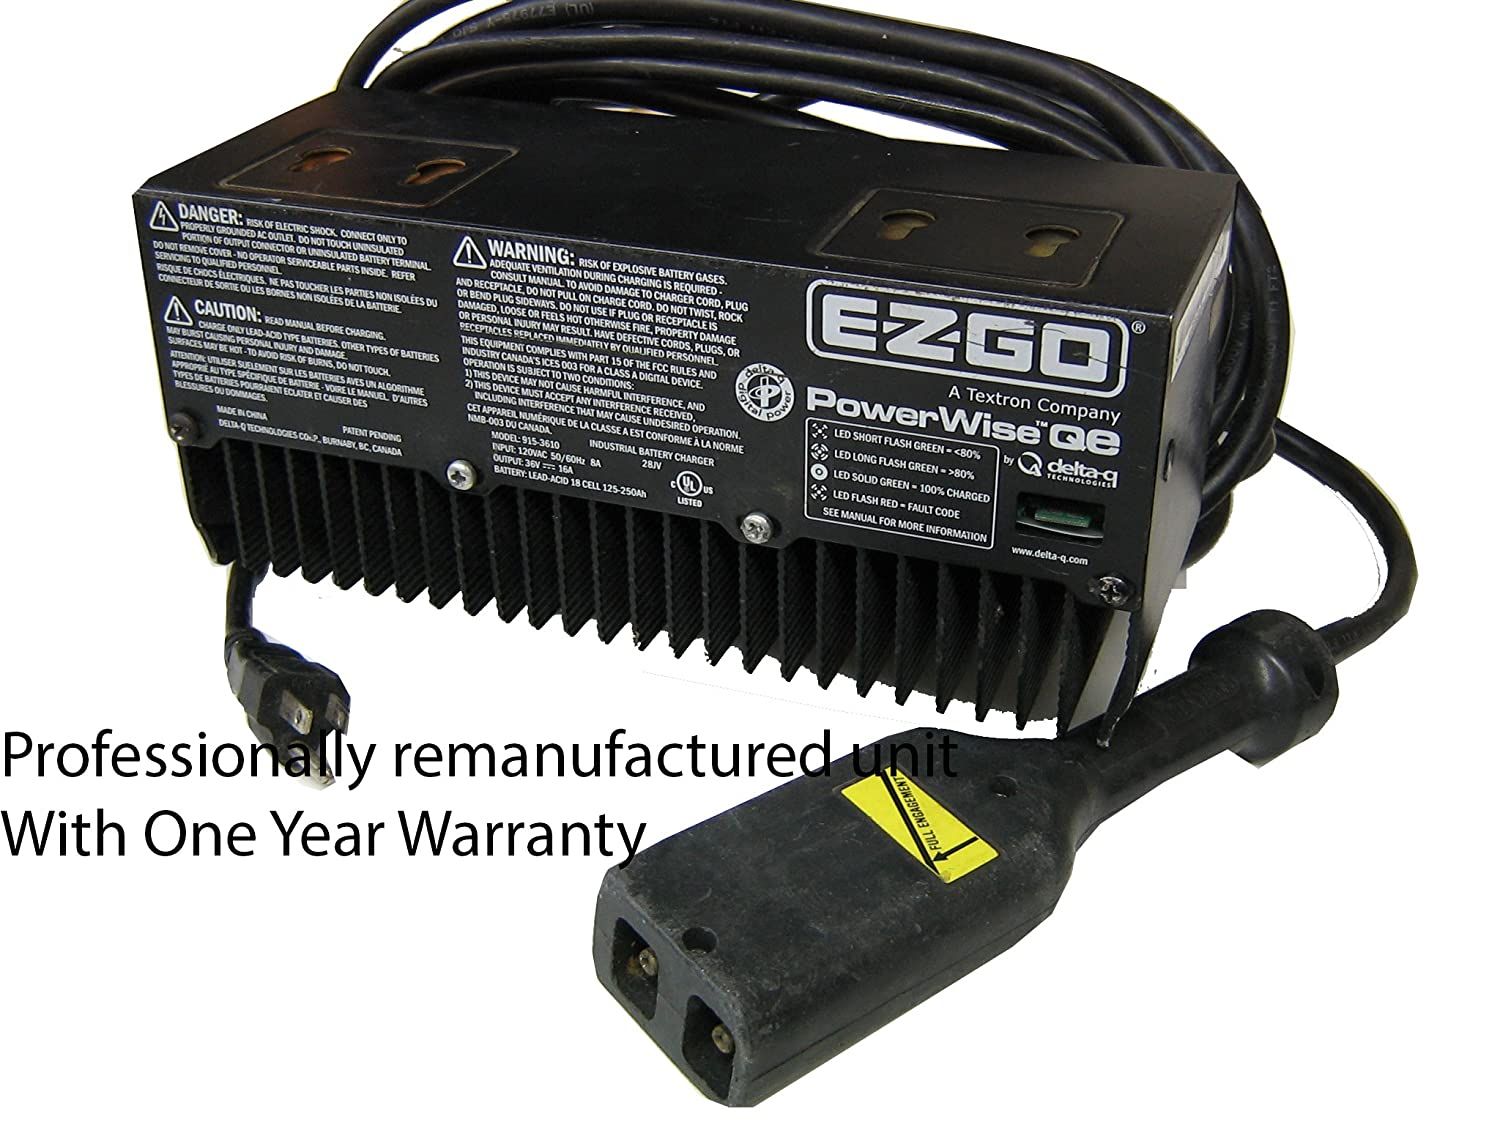 amazon com ez go 915 3610 battery charger 36v powerwise qe g3610 rh uedata amazon com EZ Go Battery Charger Manual Textron Charger Parts